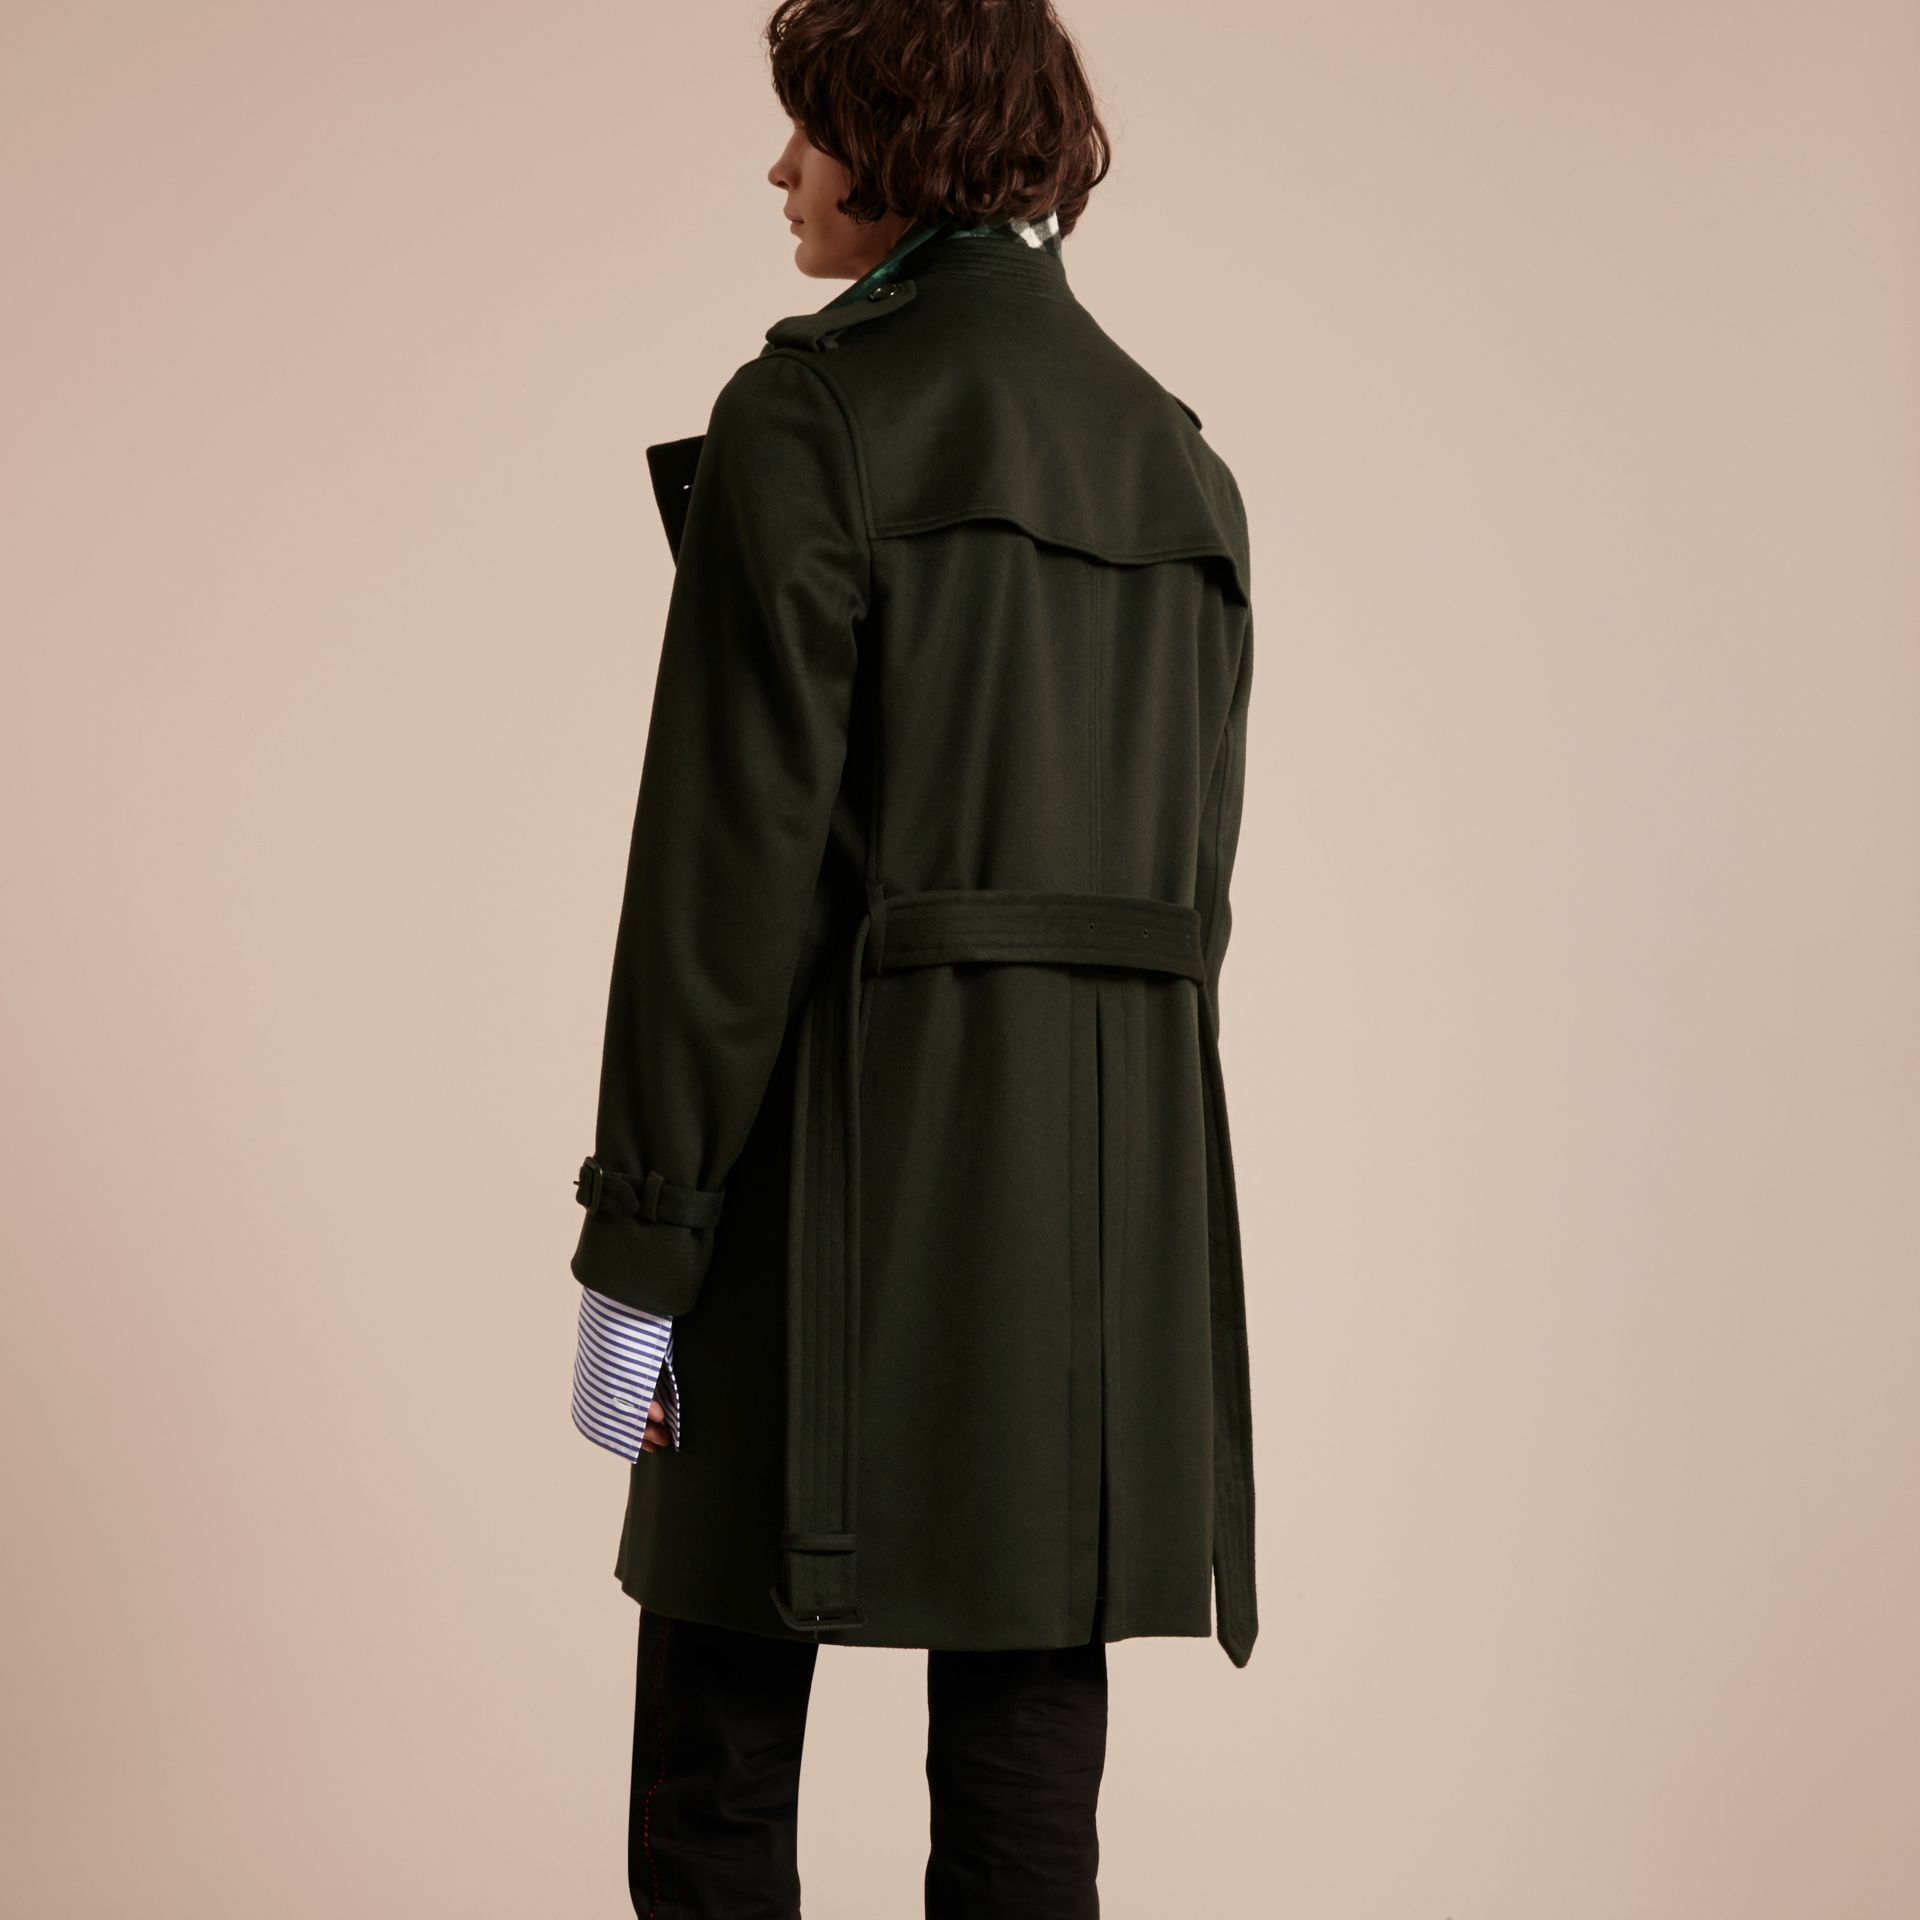 Dark military green Cashmere Trench Coat Dark Military Green - gallery image 2